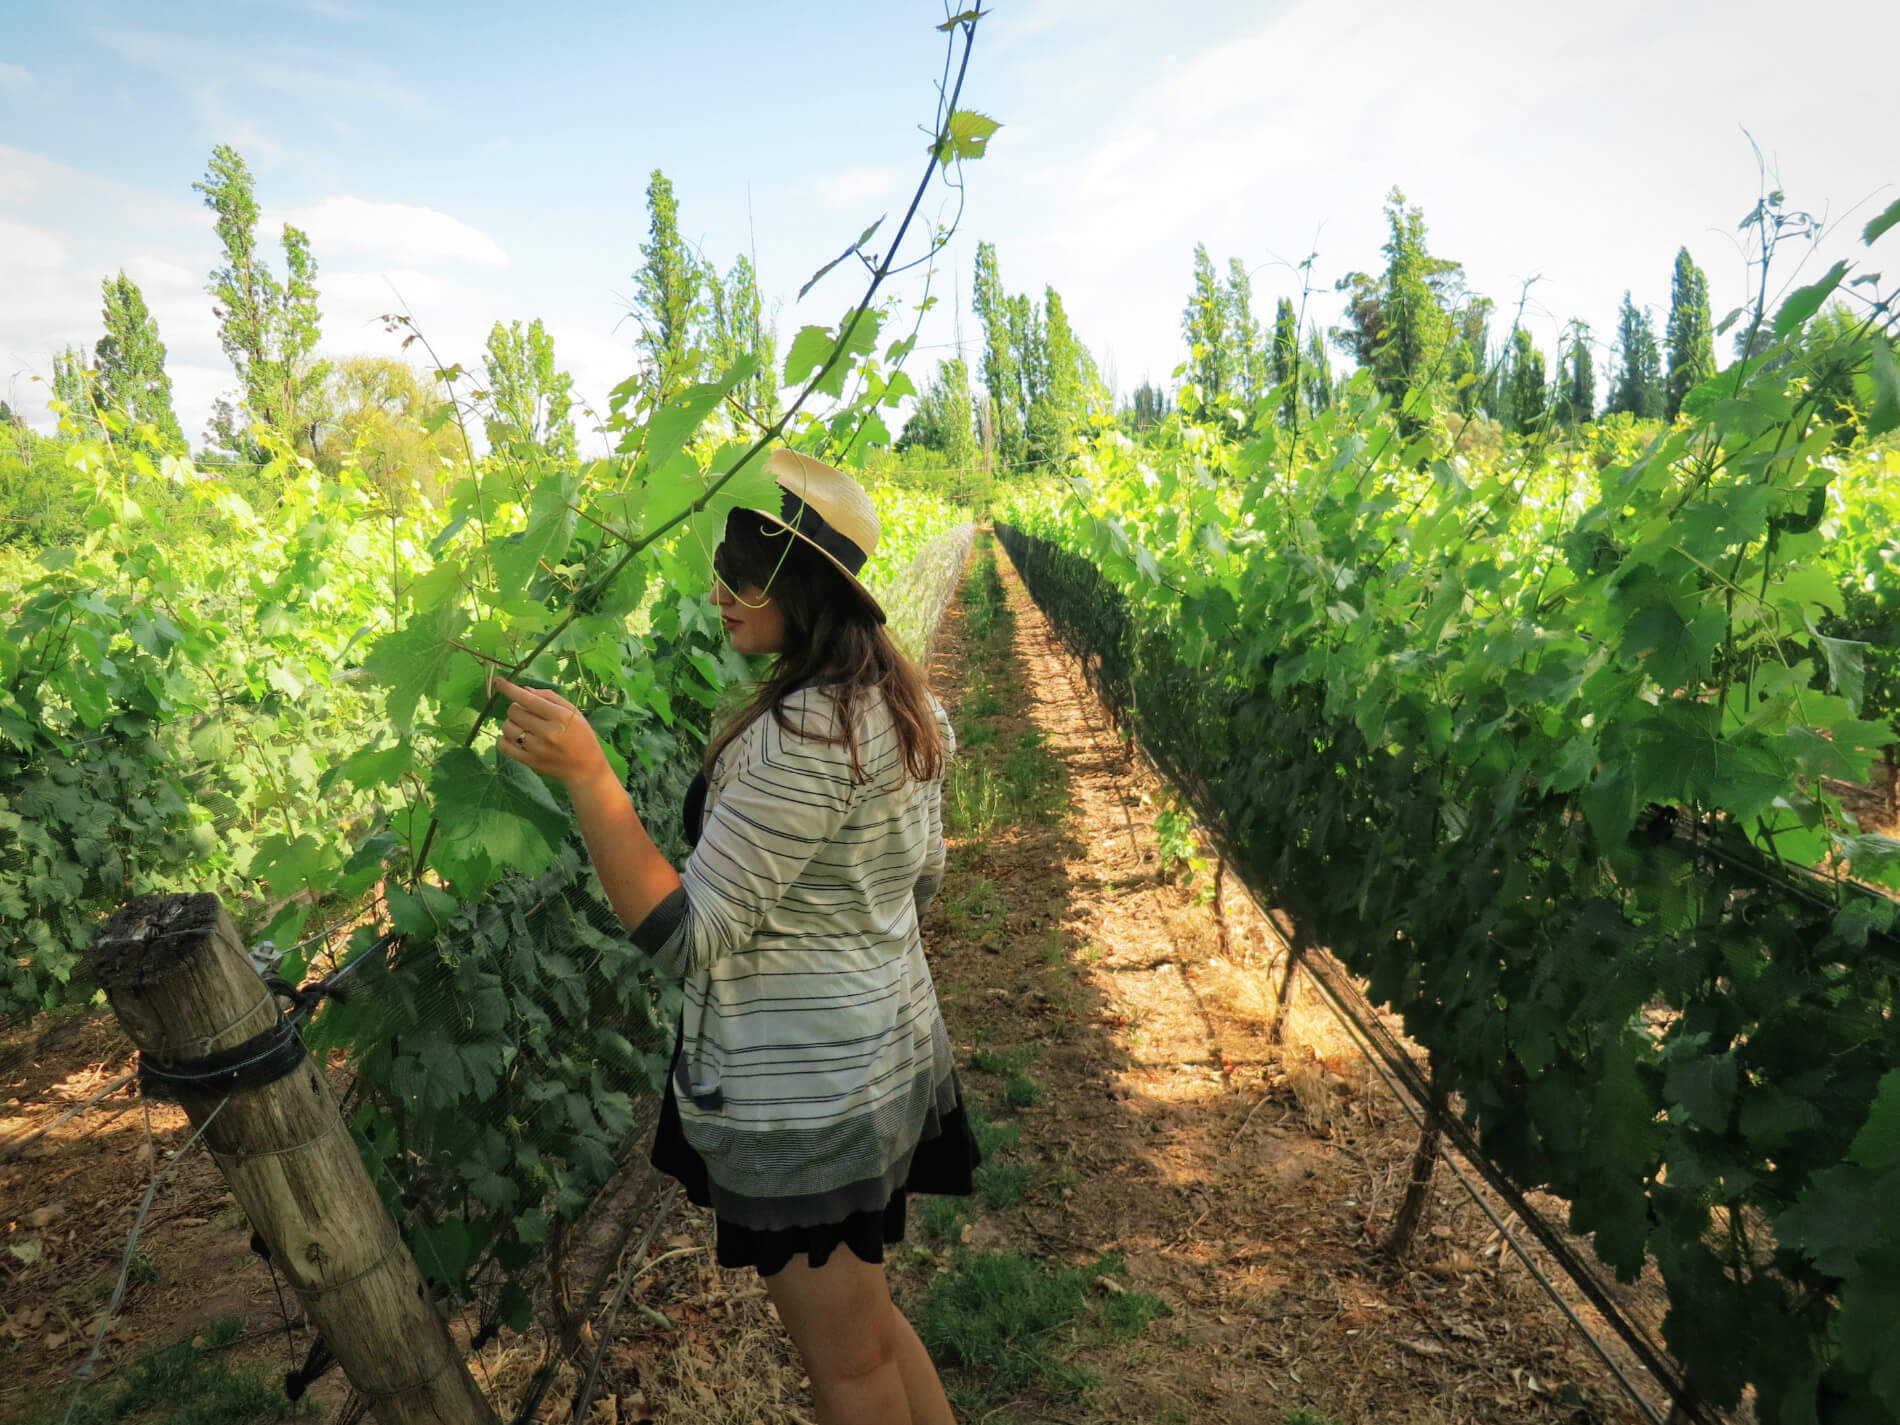 Vineyards in Mendoza, Argentina. Part of a winery tasting tour with Mendoza Wine Camp.